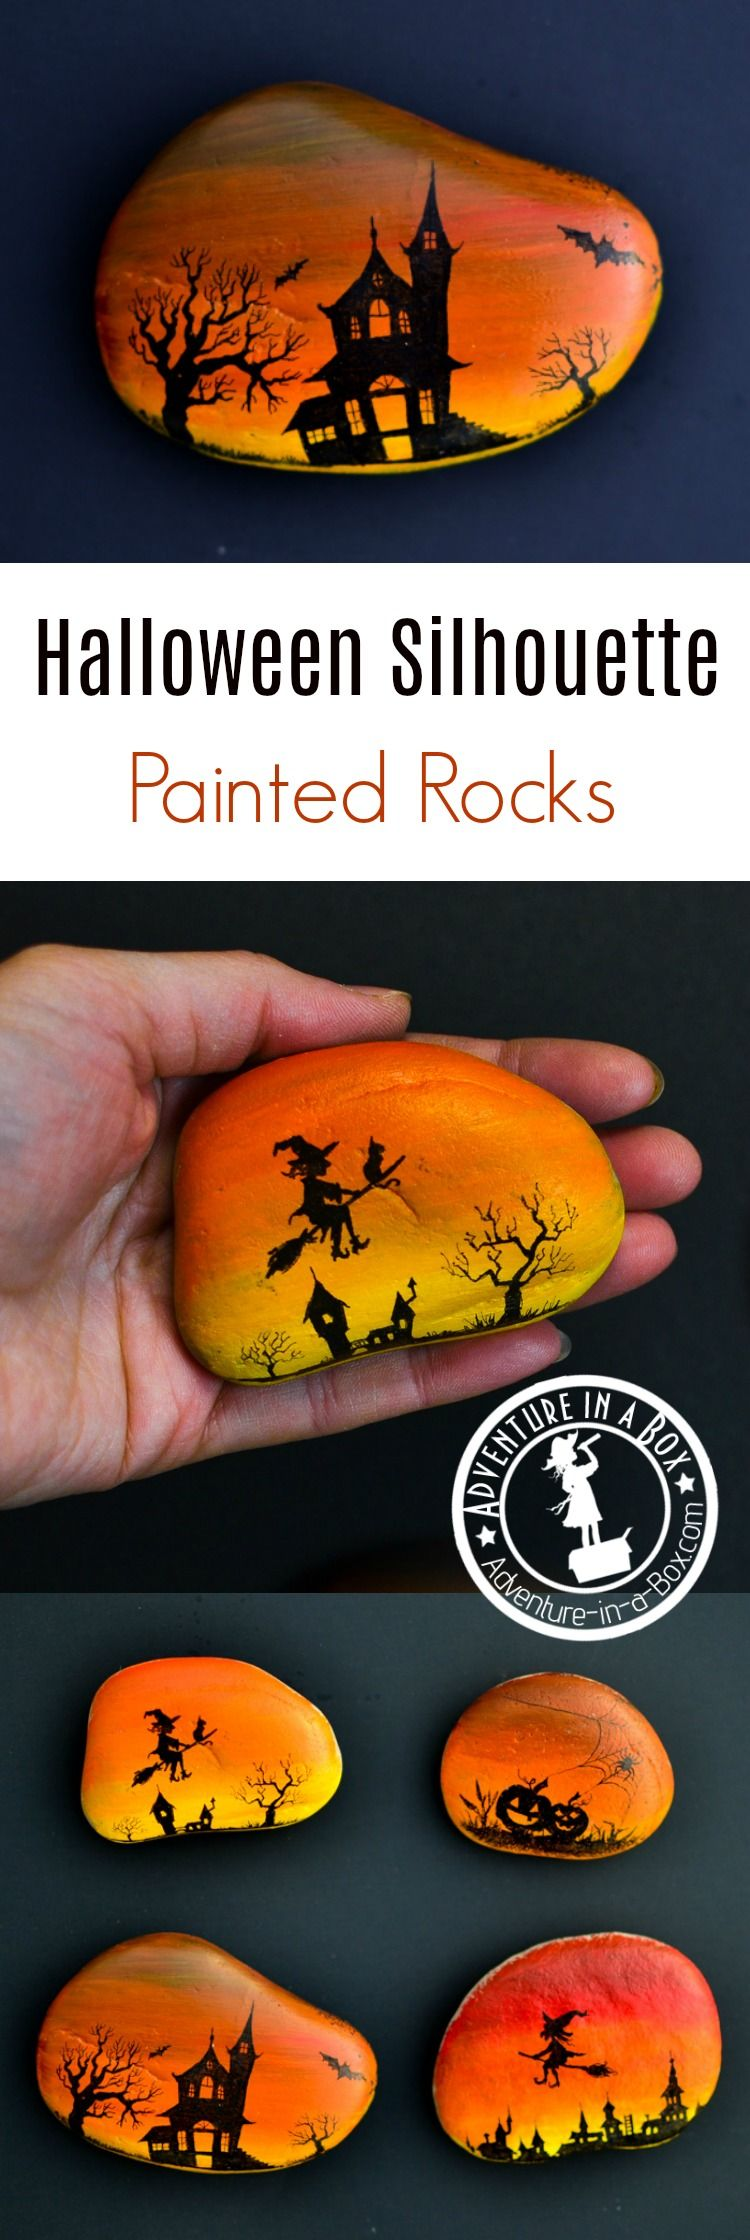 Magical Halloween Silhouette Painted Rocks | Adventure in a Box